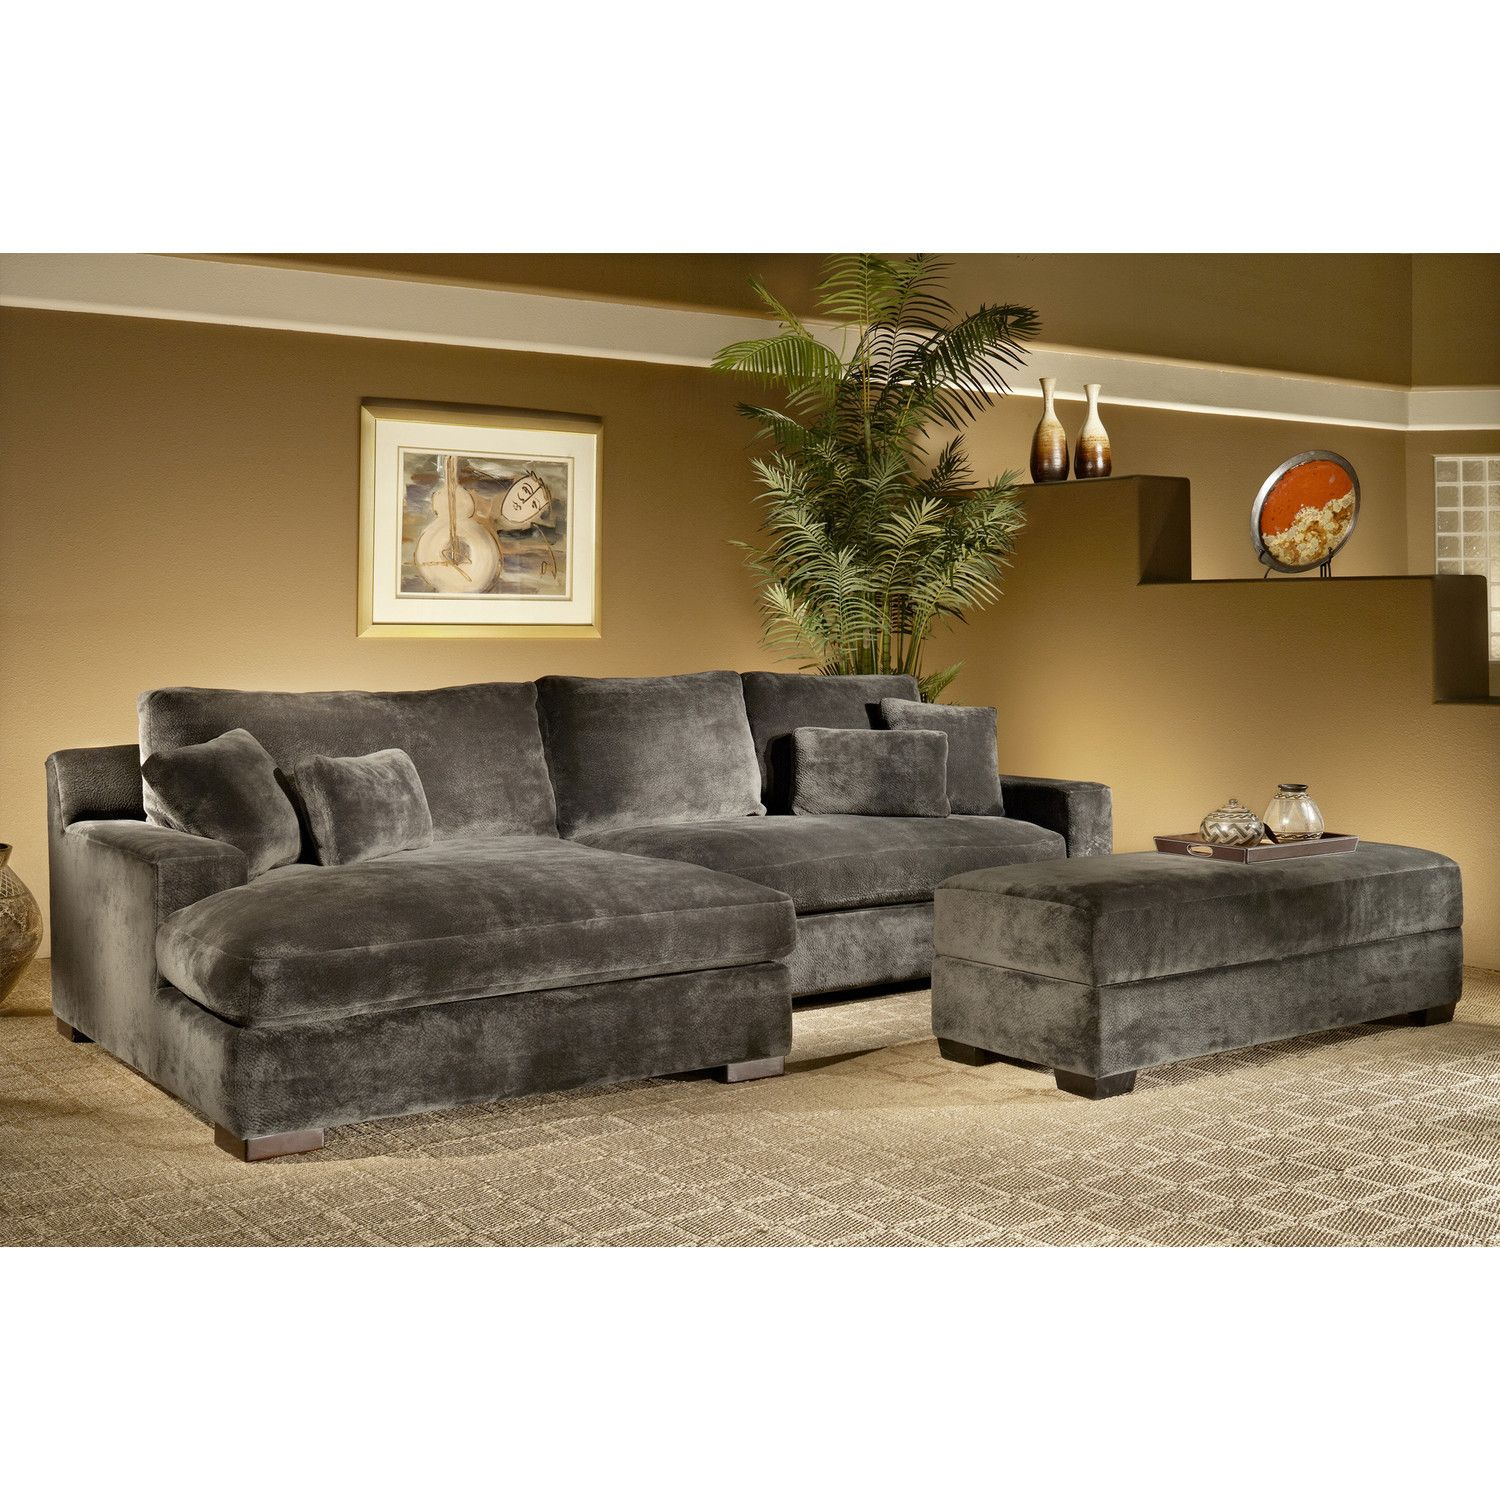 FREE SHIPPING Shop Wayfair for Sage Avenue Bailey Sectional